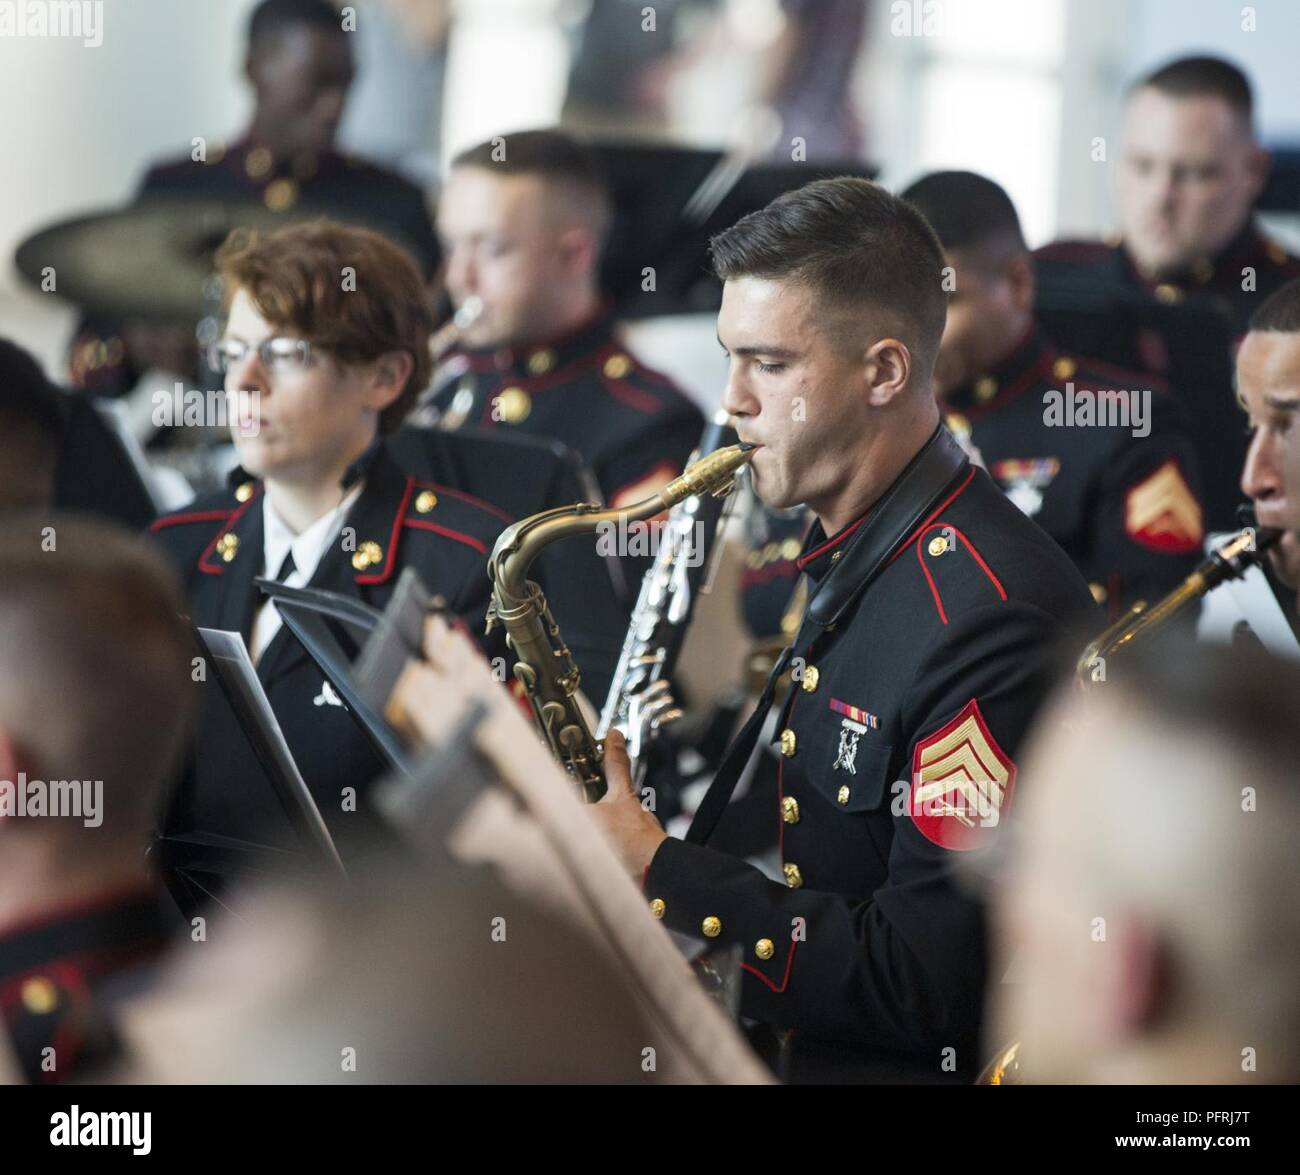 Sgt. Spencer Day, a saxophone player with The Marine Forces Reserve Band, plays his instrument during a Memorial Day Remembrance ceremony at the World War II Museum in New Orleans, May 26, 2018. The Marines performed to the public to honor the men and women who have given the ultimate sacrifice for their nation. - Stock Image